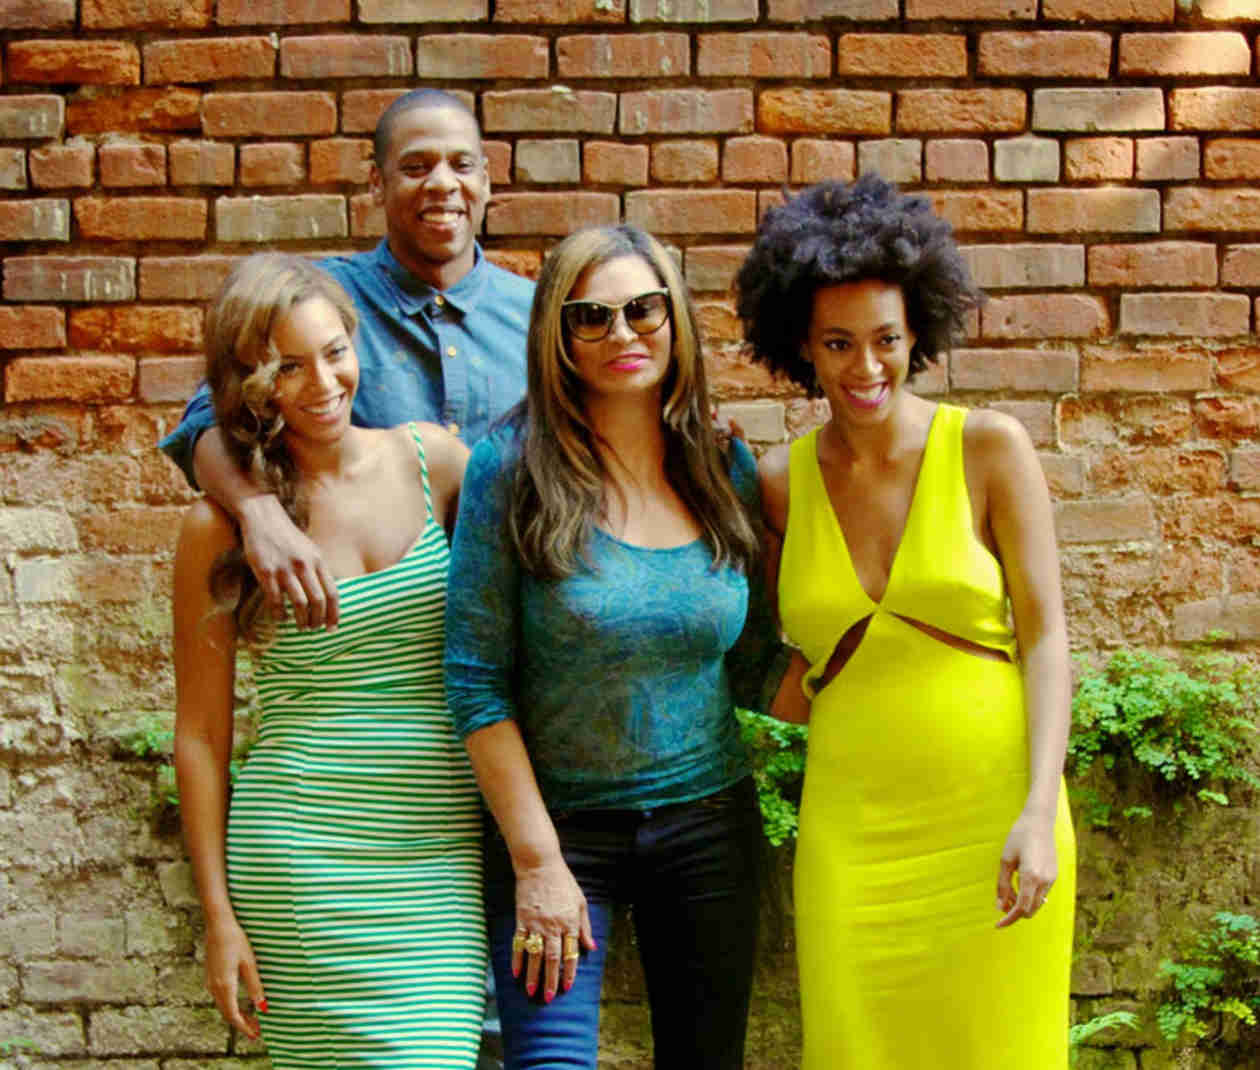 Beyoncé, Jay Z, and Solange Share New Family Photo